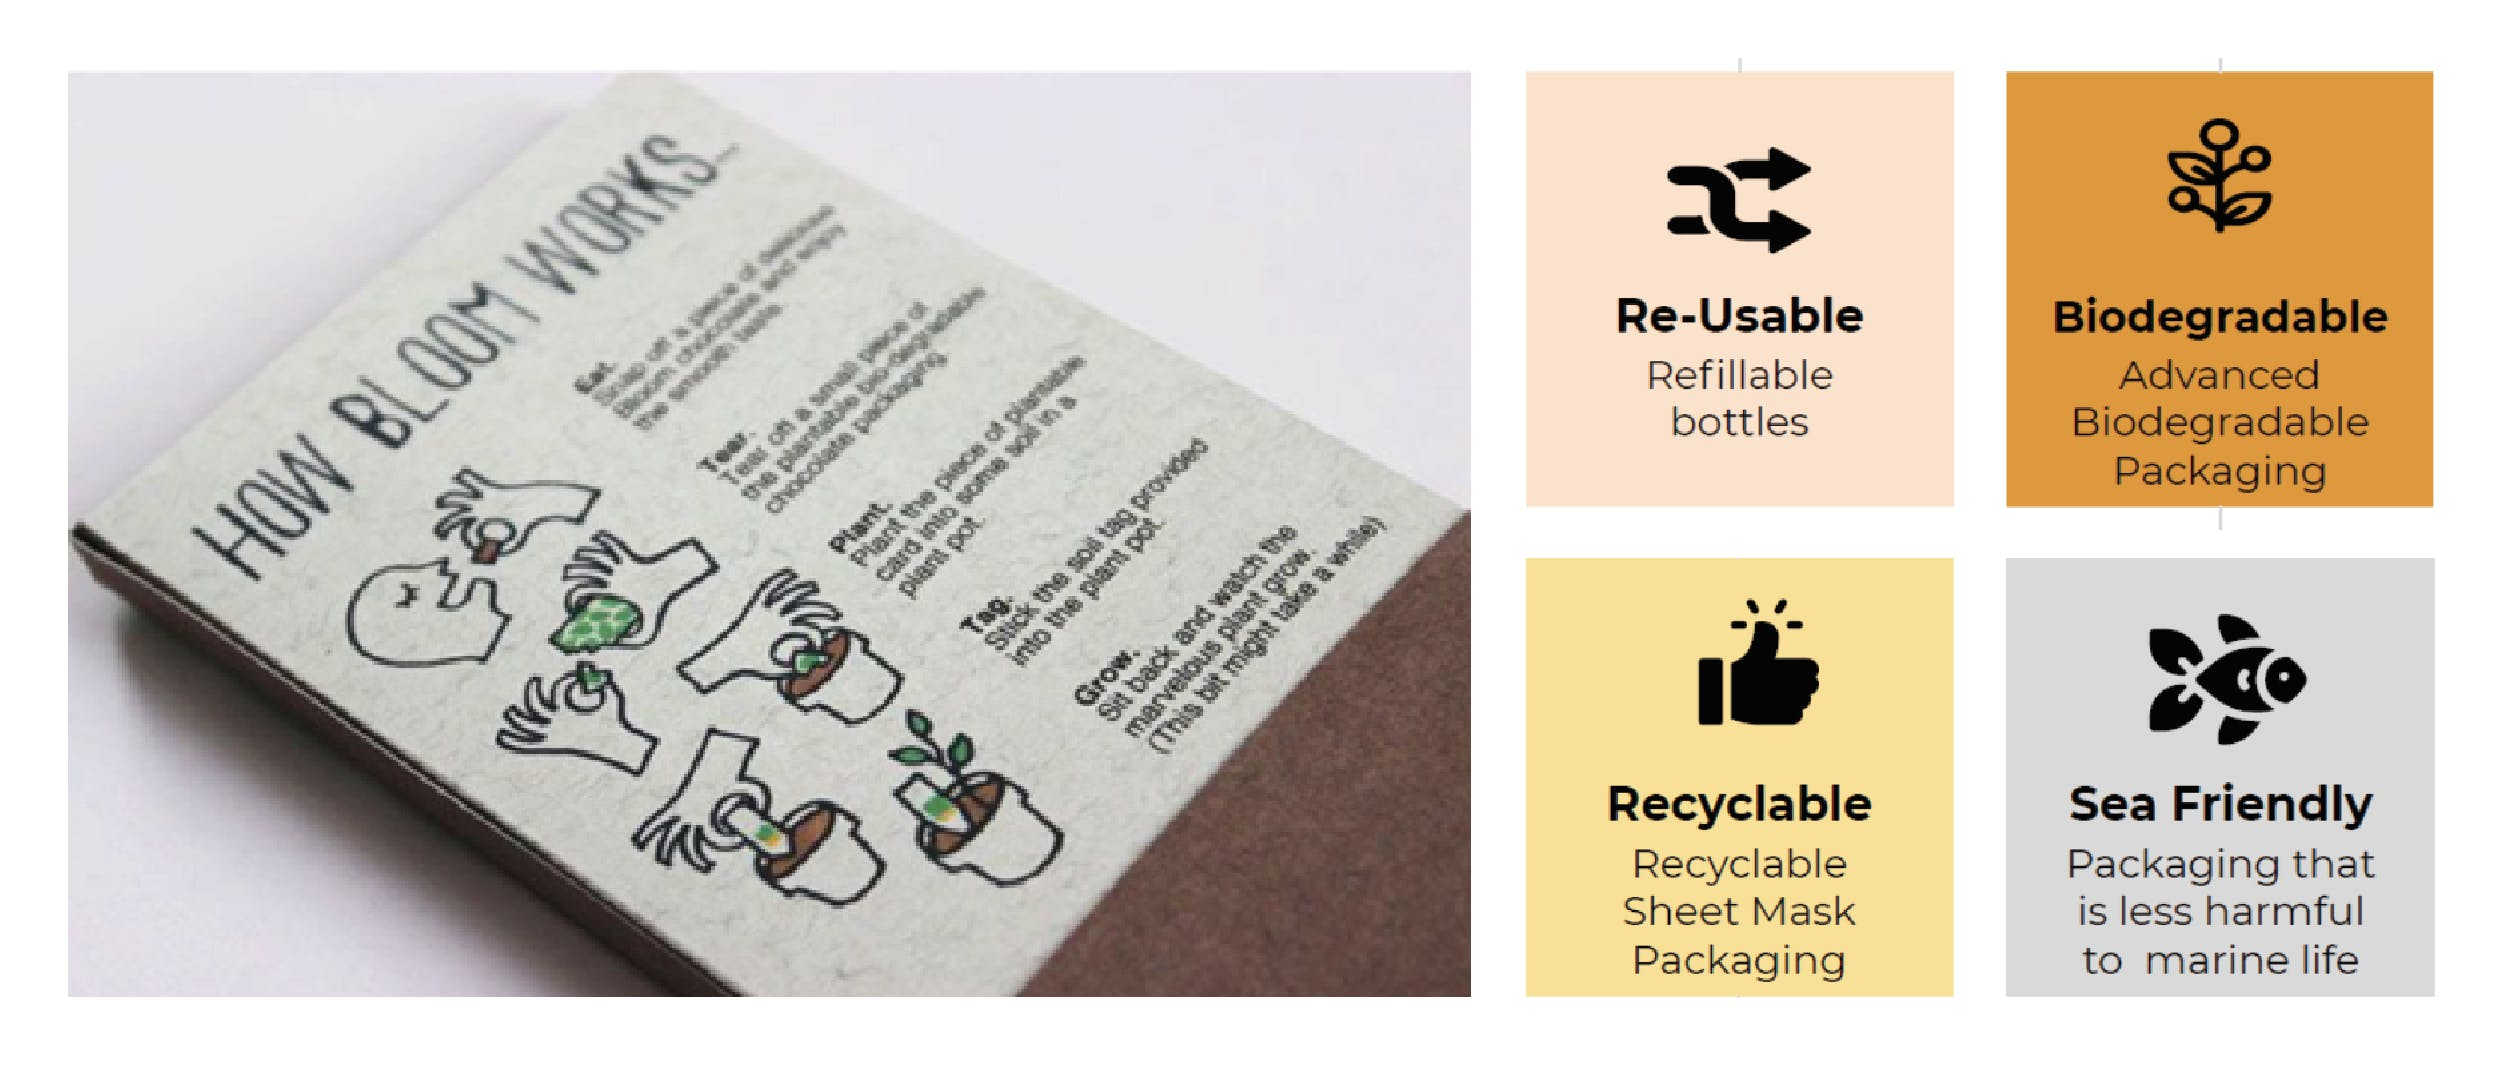 ECO FRIENDY icon at package